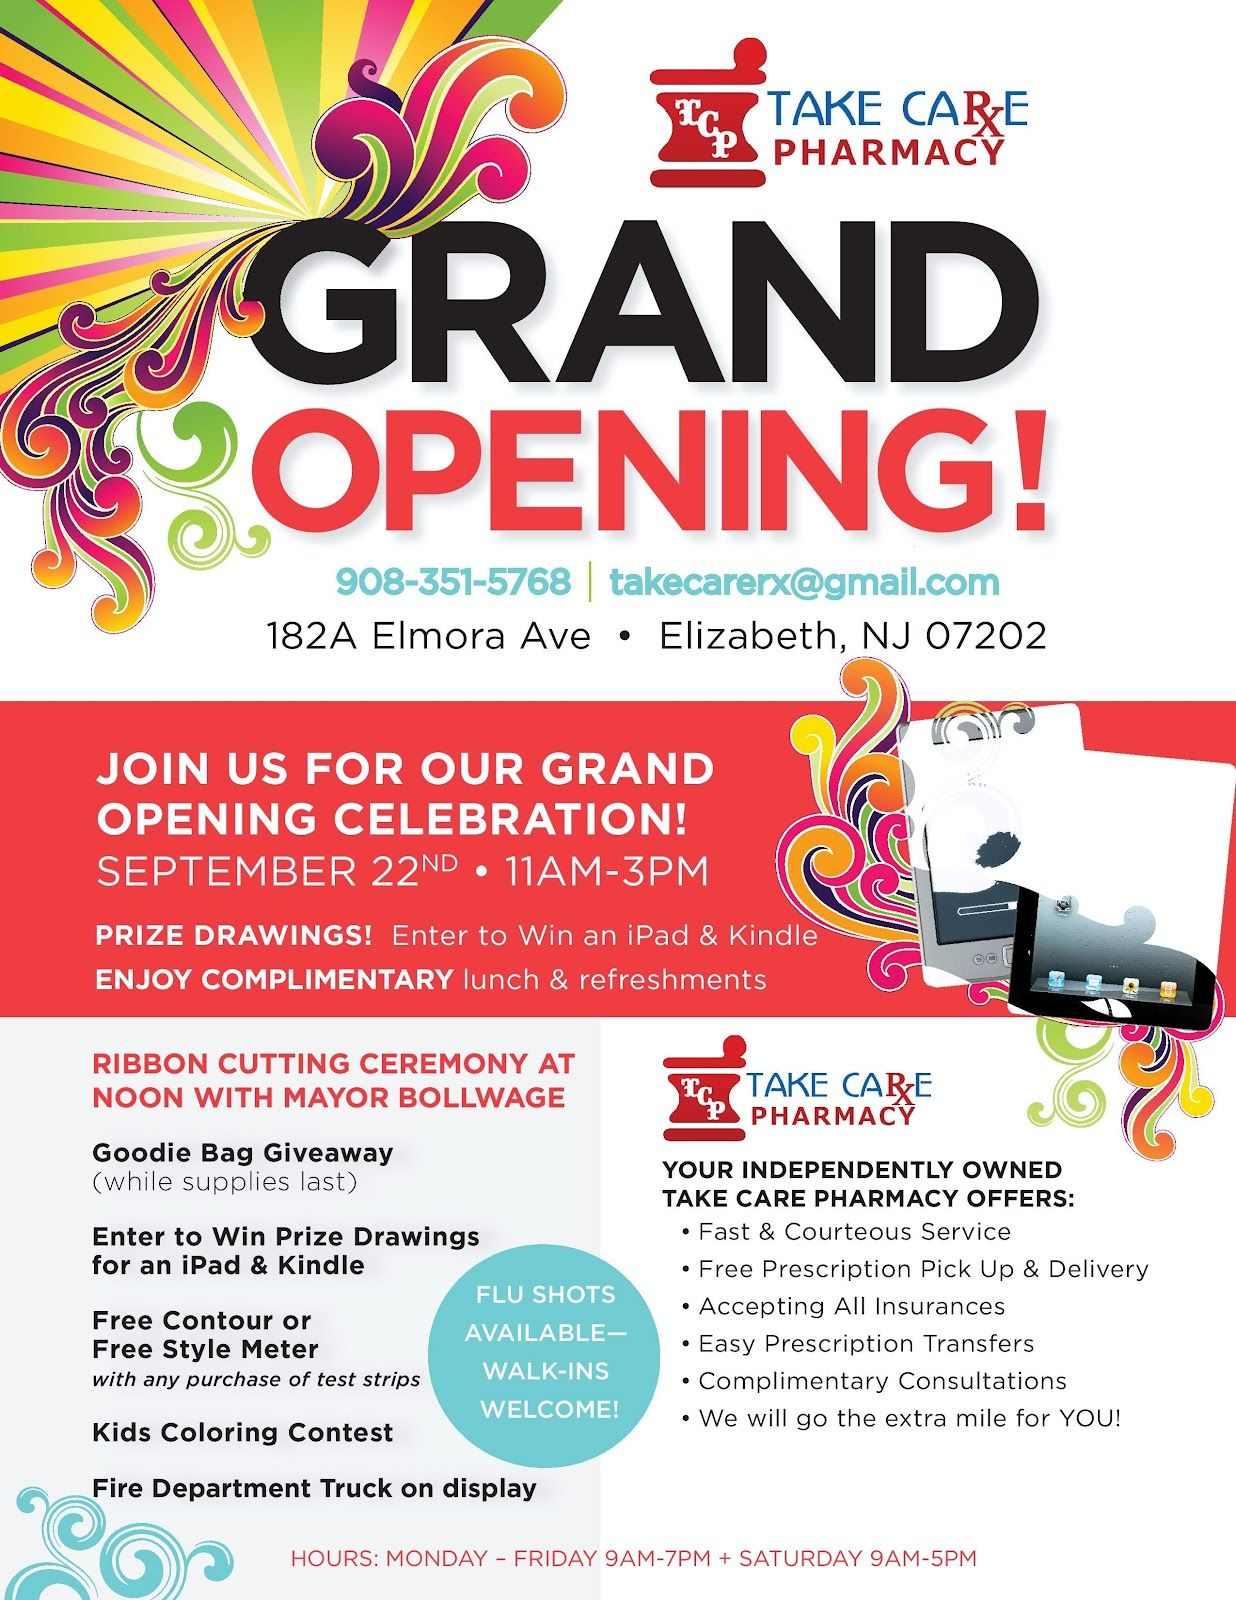 Grand opening connect with us pinterest grand opening for Grand opening flyer ideas